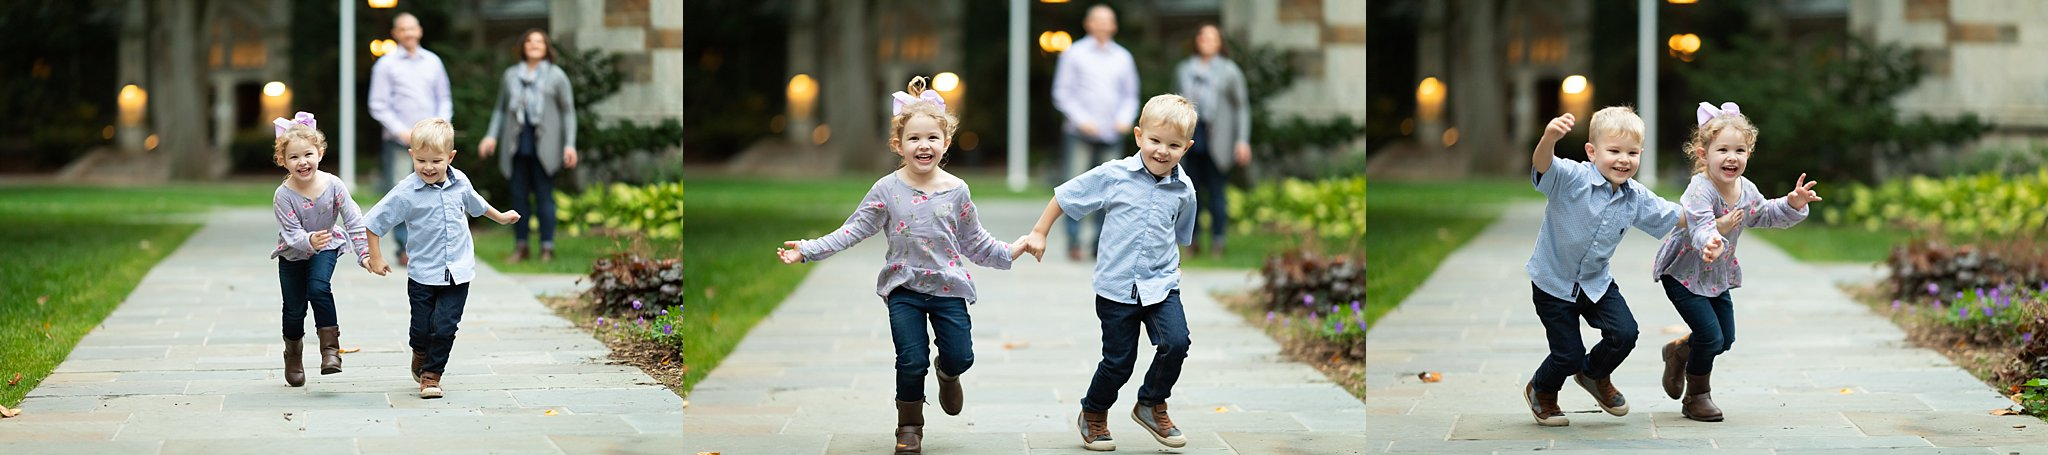 Family Photos at The Law Quad | Ann Arbor Photographer